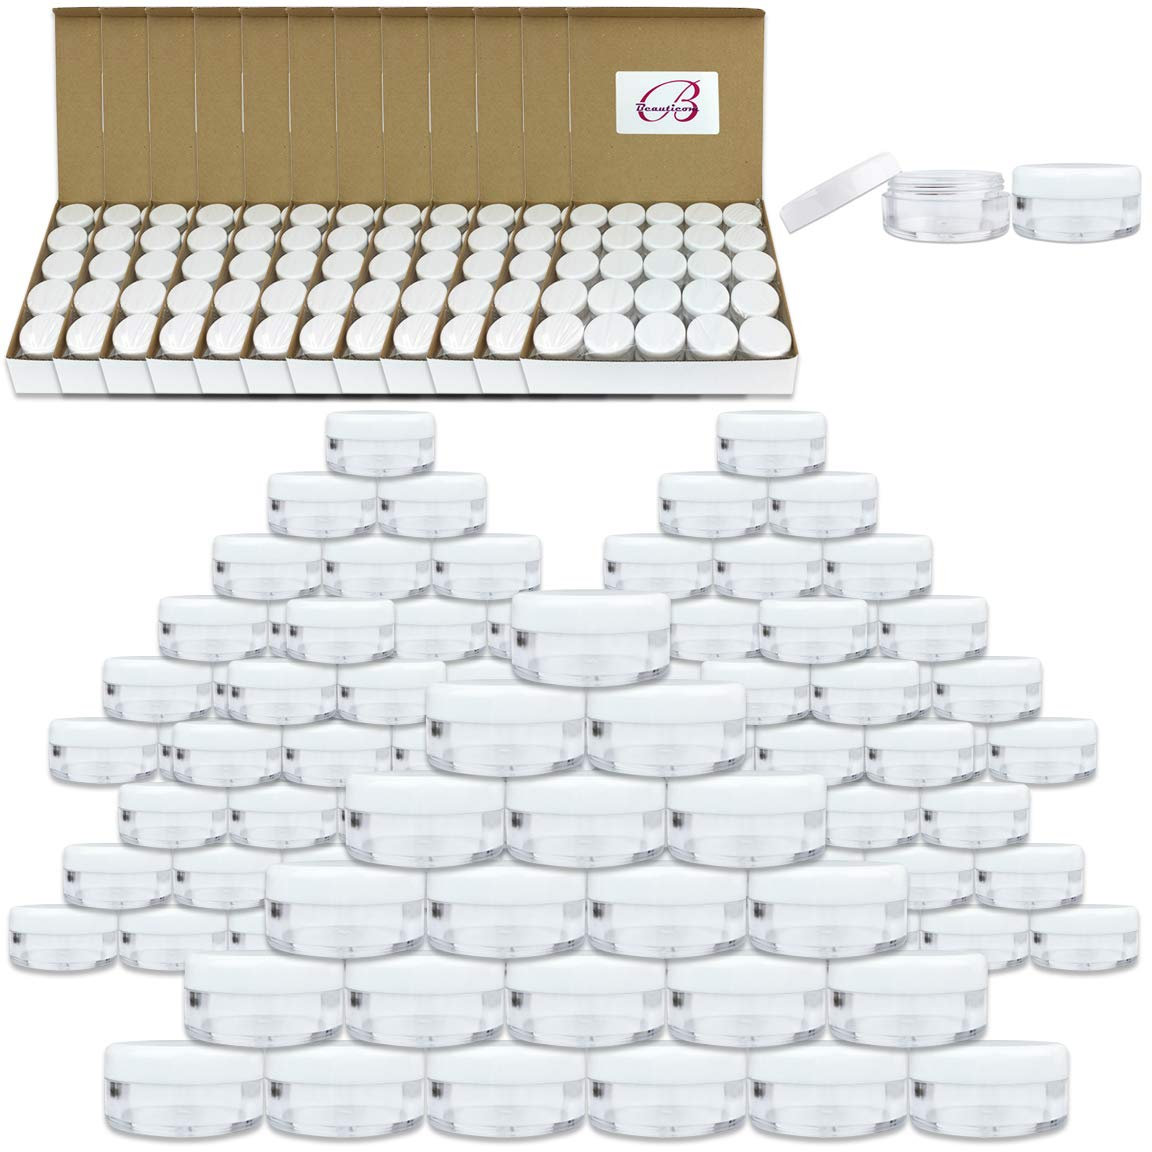 (2000 Pcs) Beauticom 5G/5ML Round Clear Jars with White Lids for Acrylic Powder, Rhinestones, Charms and Other Nail Accessories - BPA Free by Beauticom